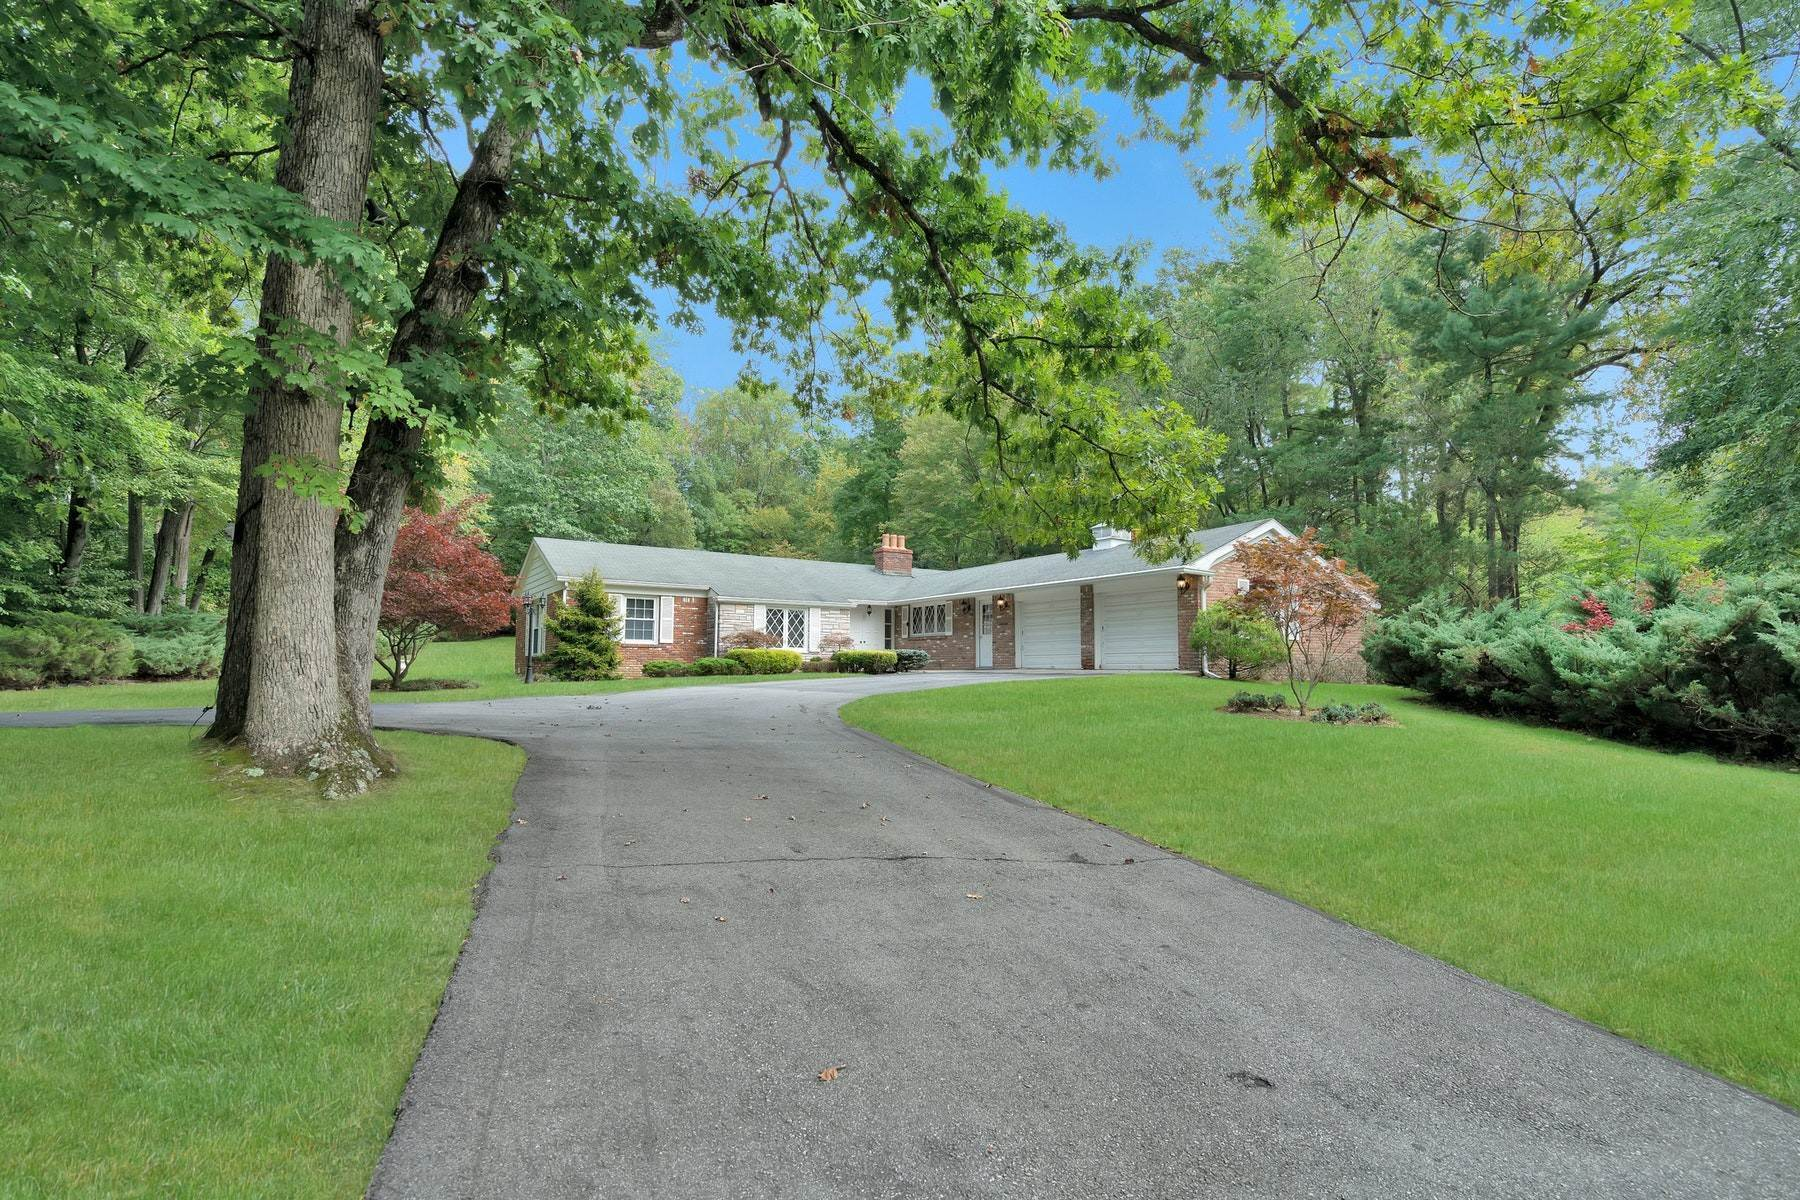 Single Family Homes for Sale at PERFECT SETTING 18 Rambling Brook Rd Upper Saddle River, New Jersey 07458 United States